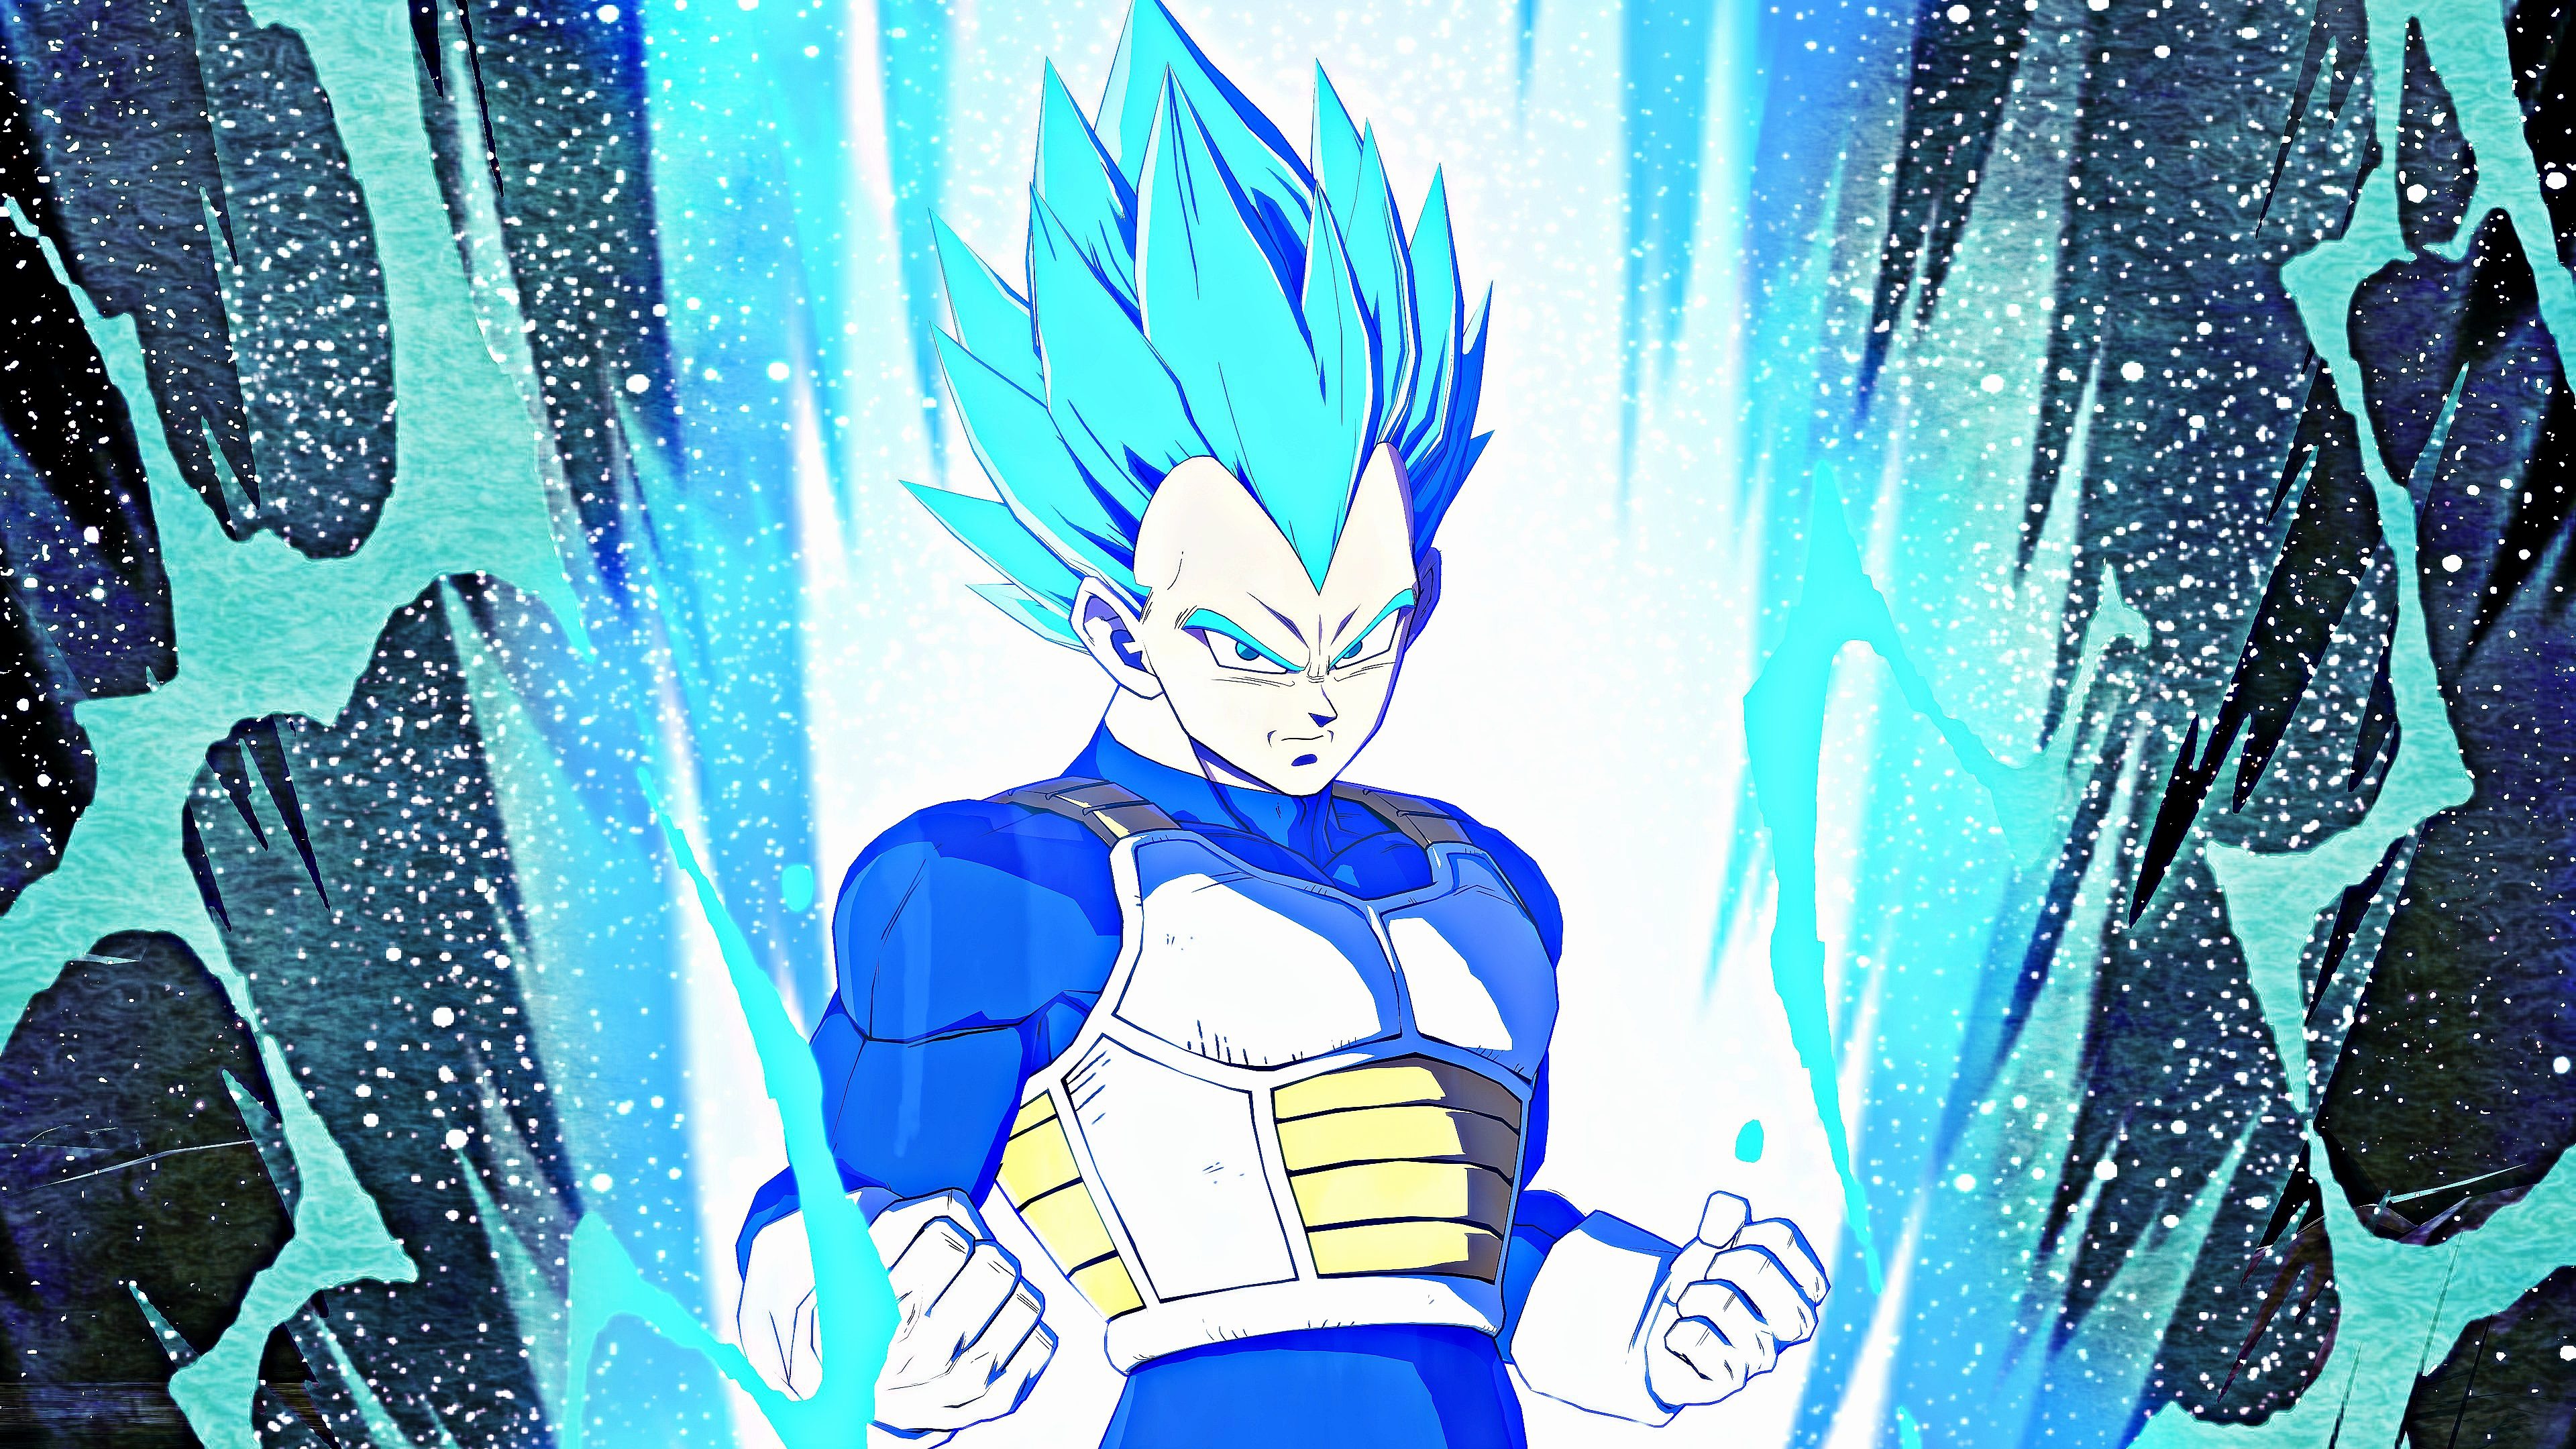 vegeta ssj blue 4k wallpaper : dragonballfighterz